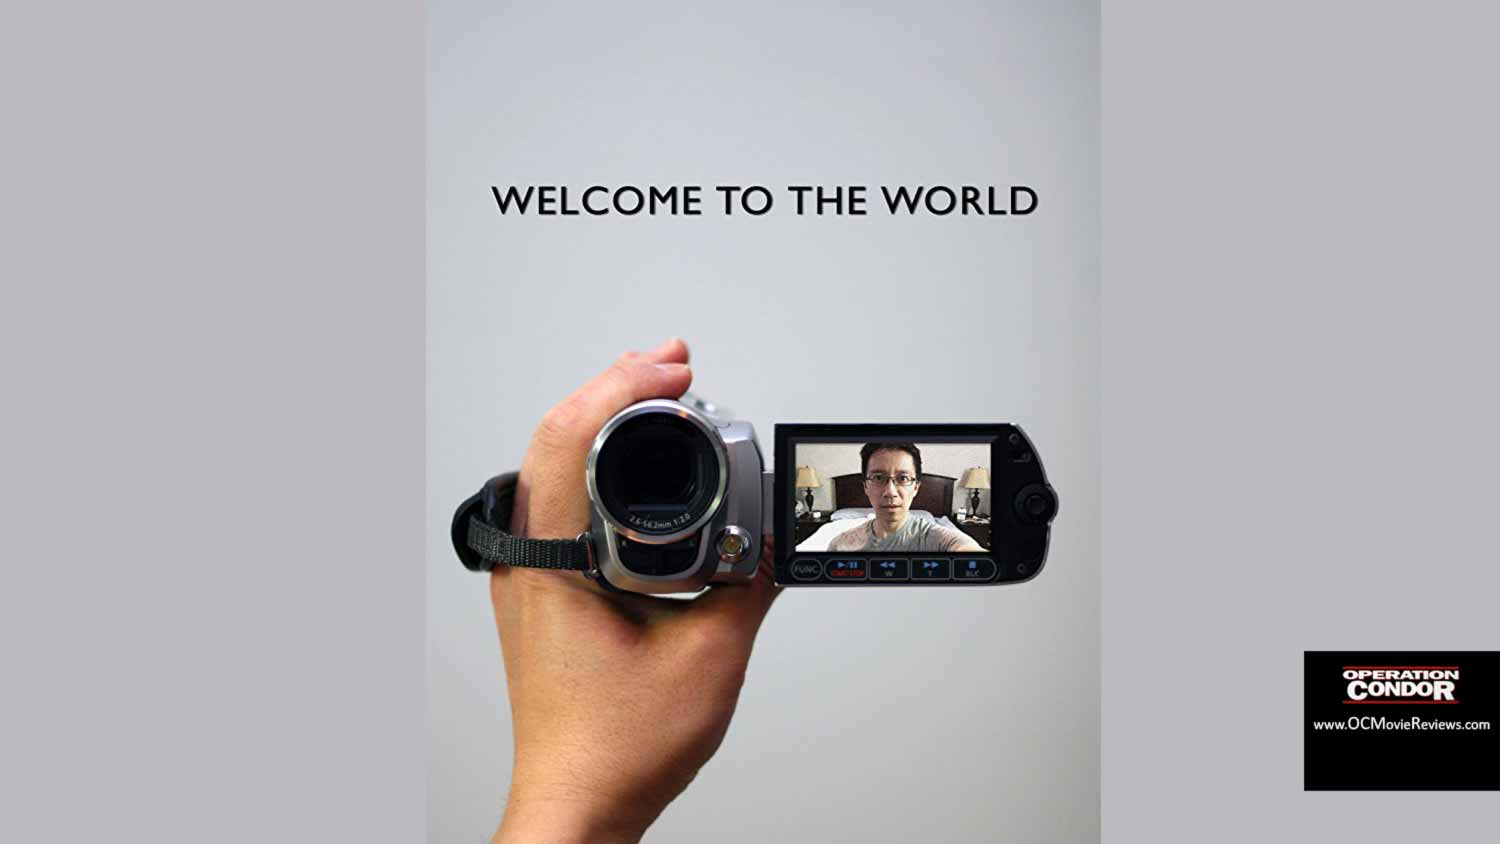 Welcome To The World Short Review - OC Movie Reviews - Movie Reviews, Movie News, Documentary Reviews, Short Films, Short Film Reviews, Trailers, Movie Trailers, Interviews, film reviews, film news, hollywood, indie films, documentaries